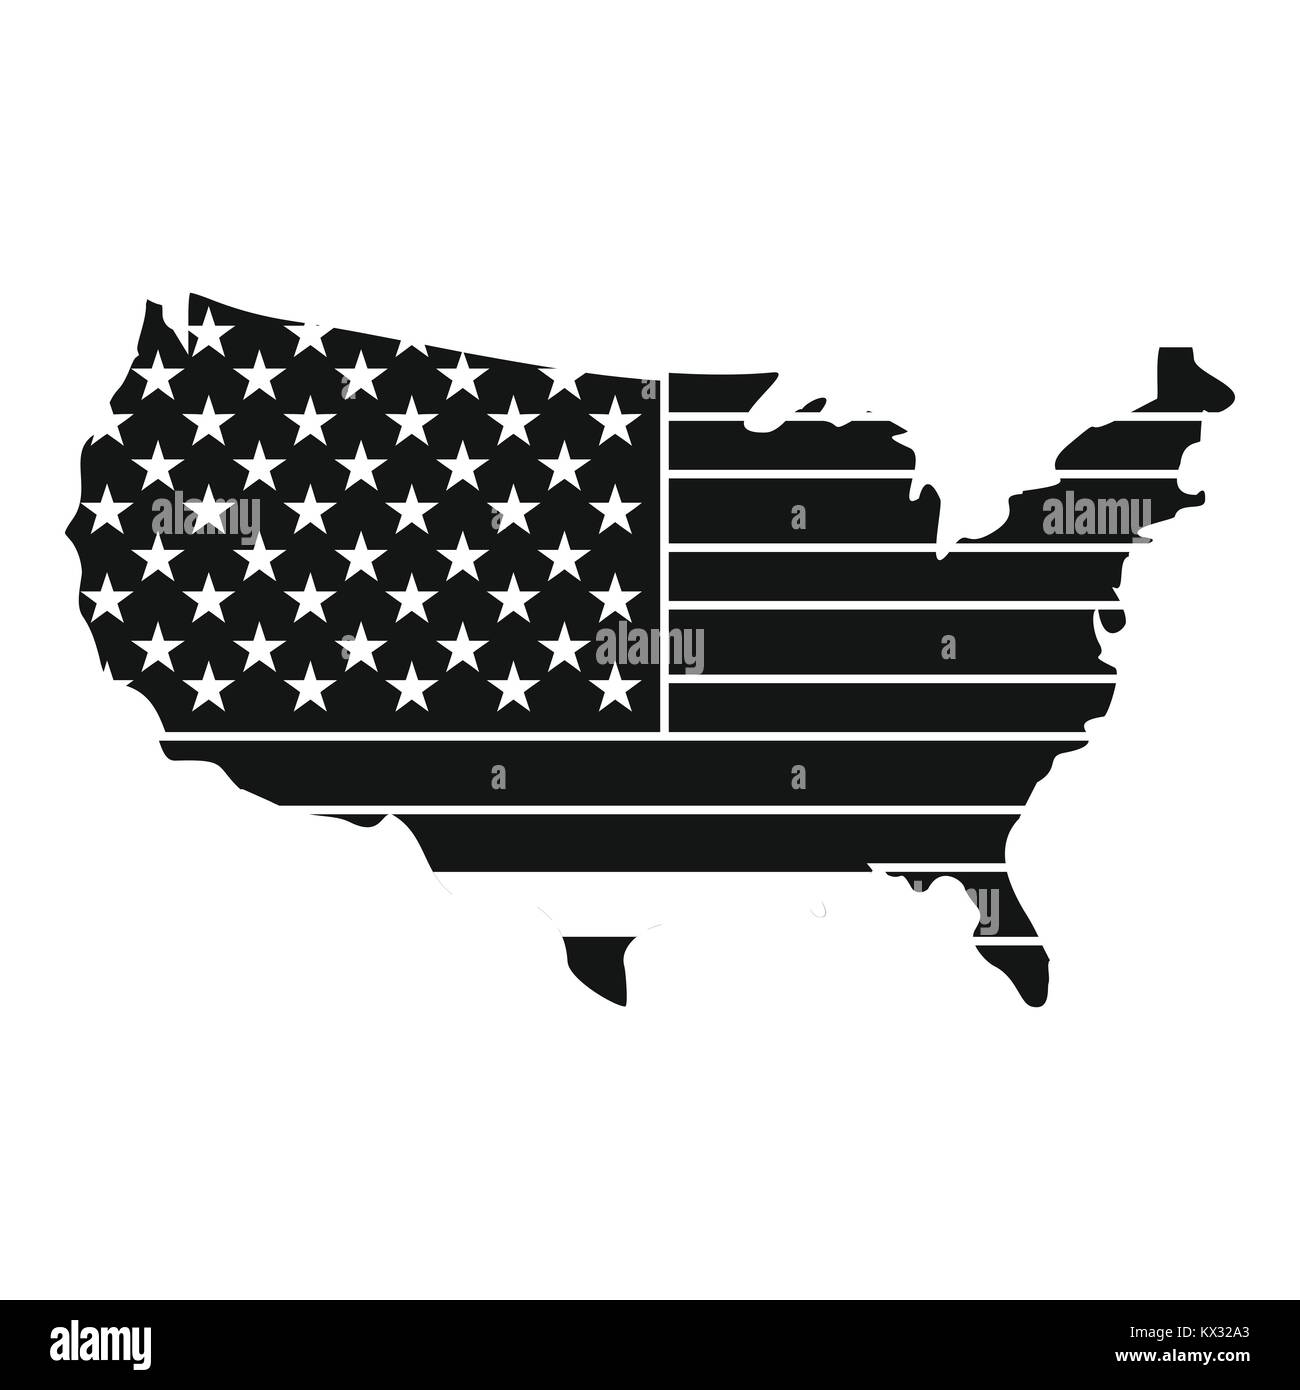 American Map Vector.American Map Icon Simple Style Stock Vector Art Illustration